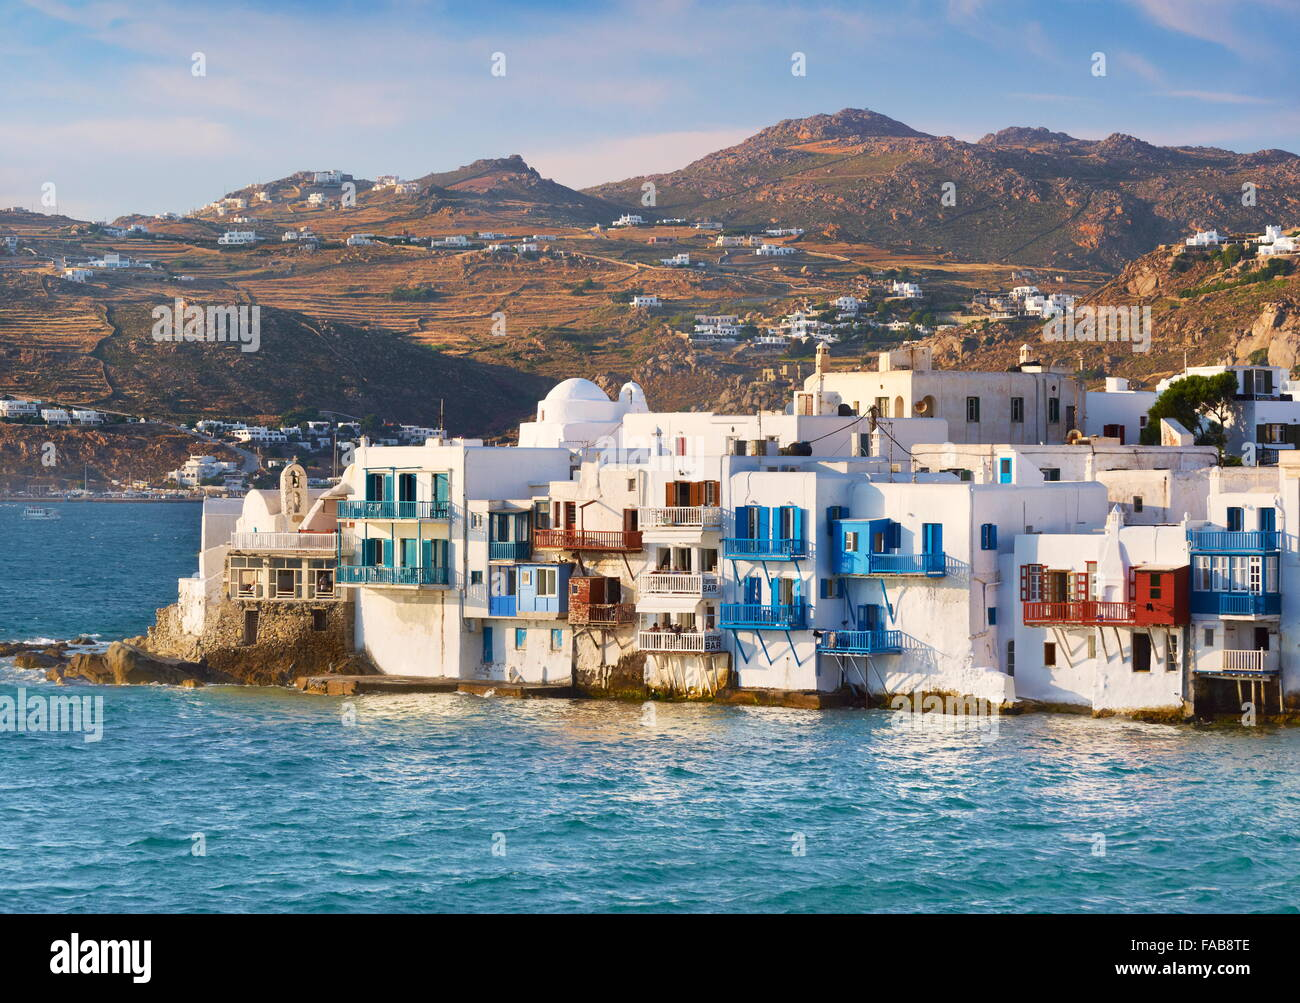 Greece - Mykonos Island, view at 'Little Venice' in the Mykonos Town, Chora - Stock Image